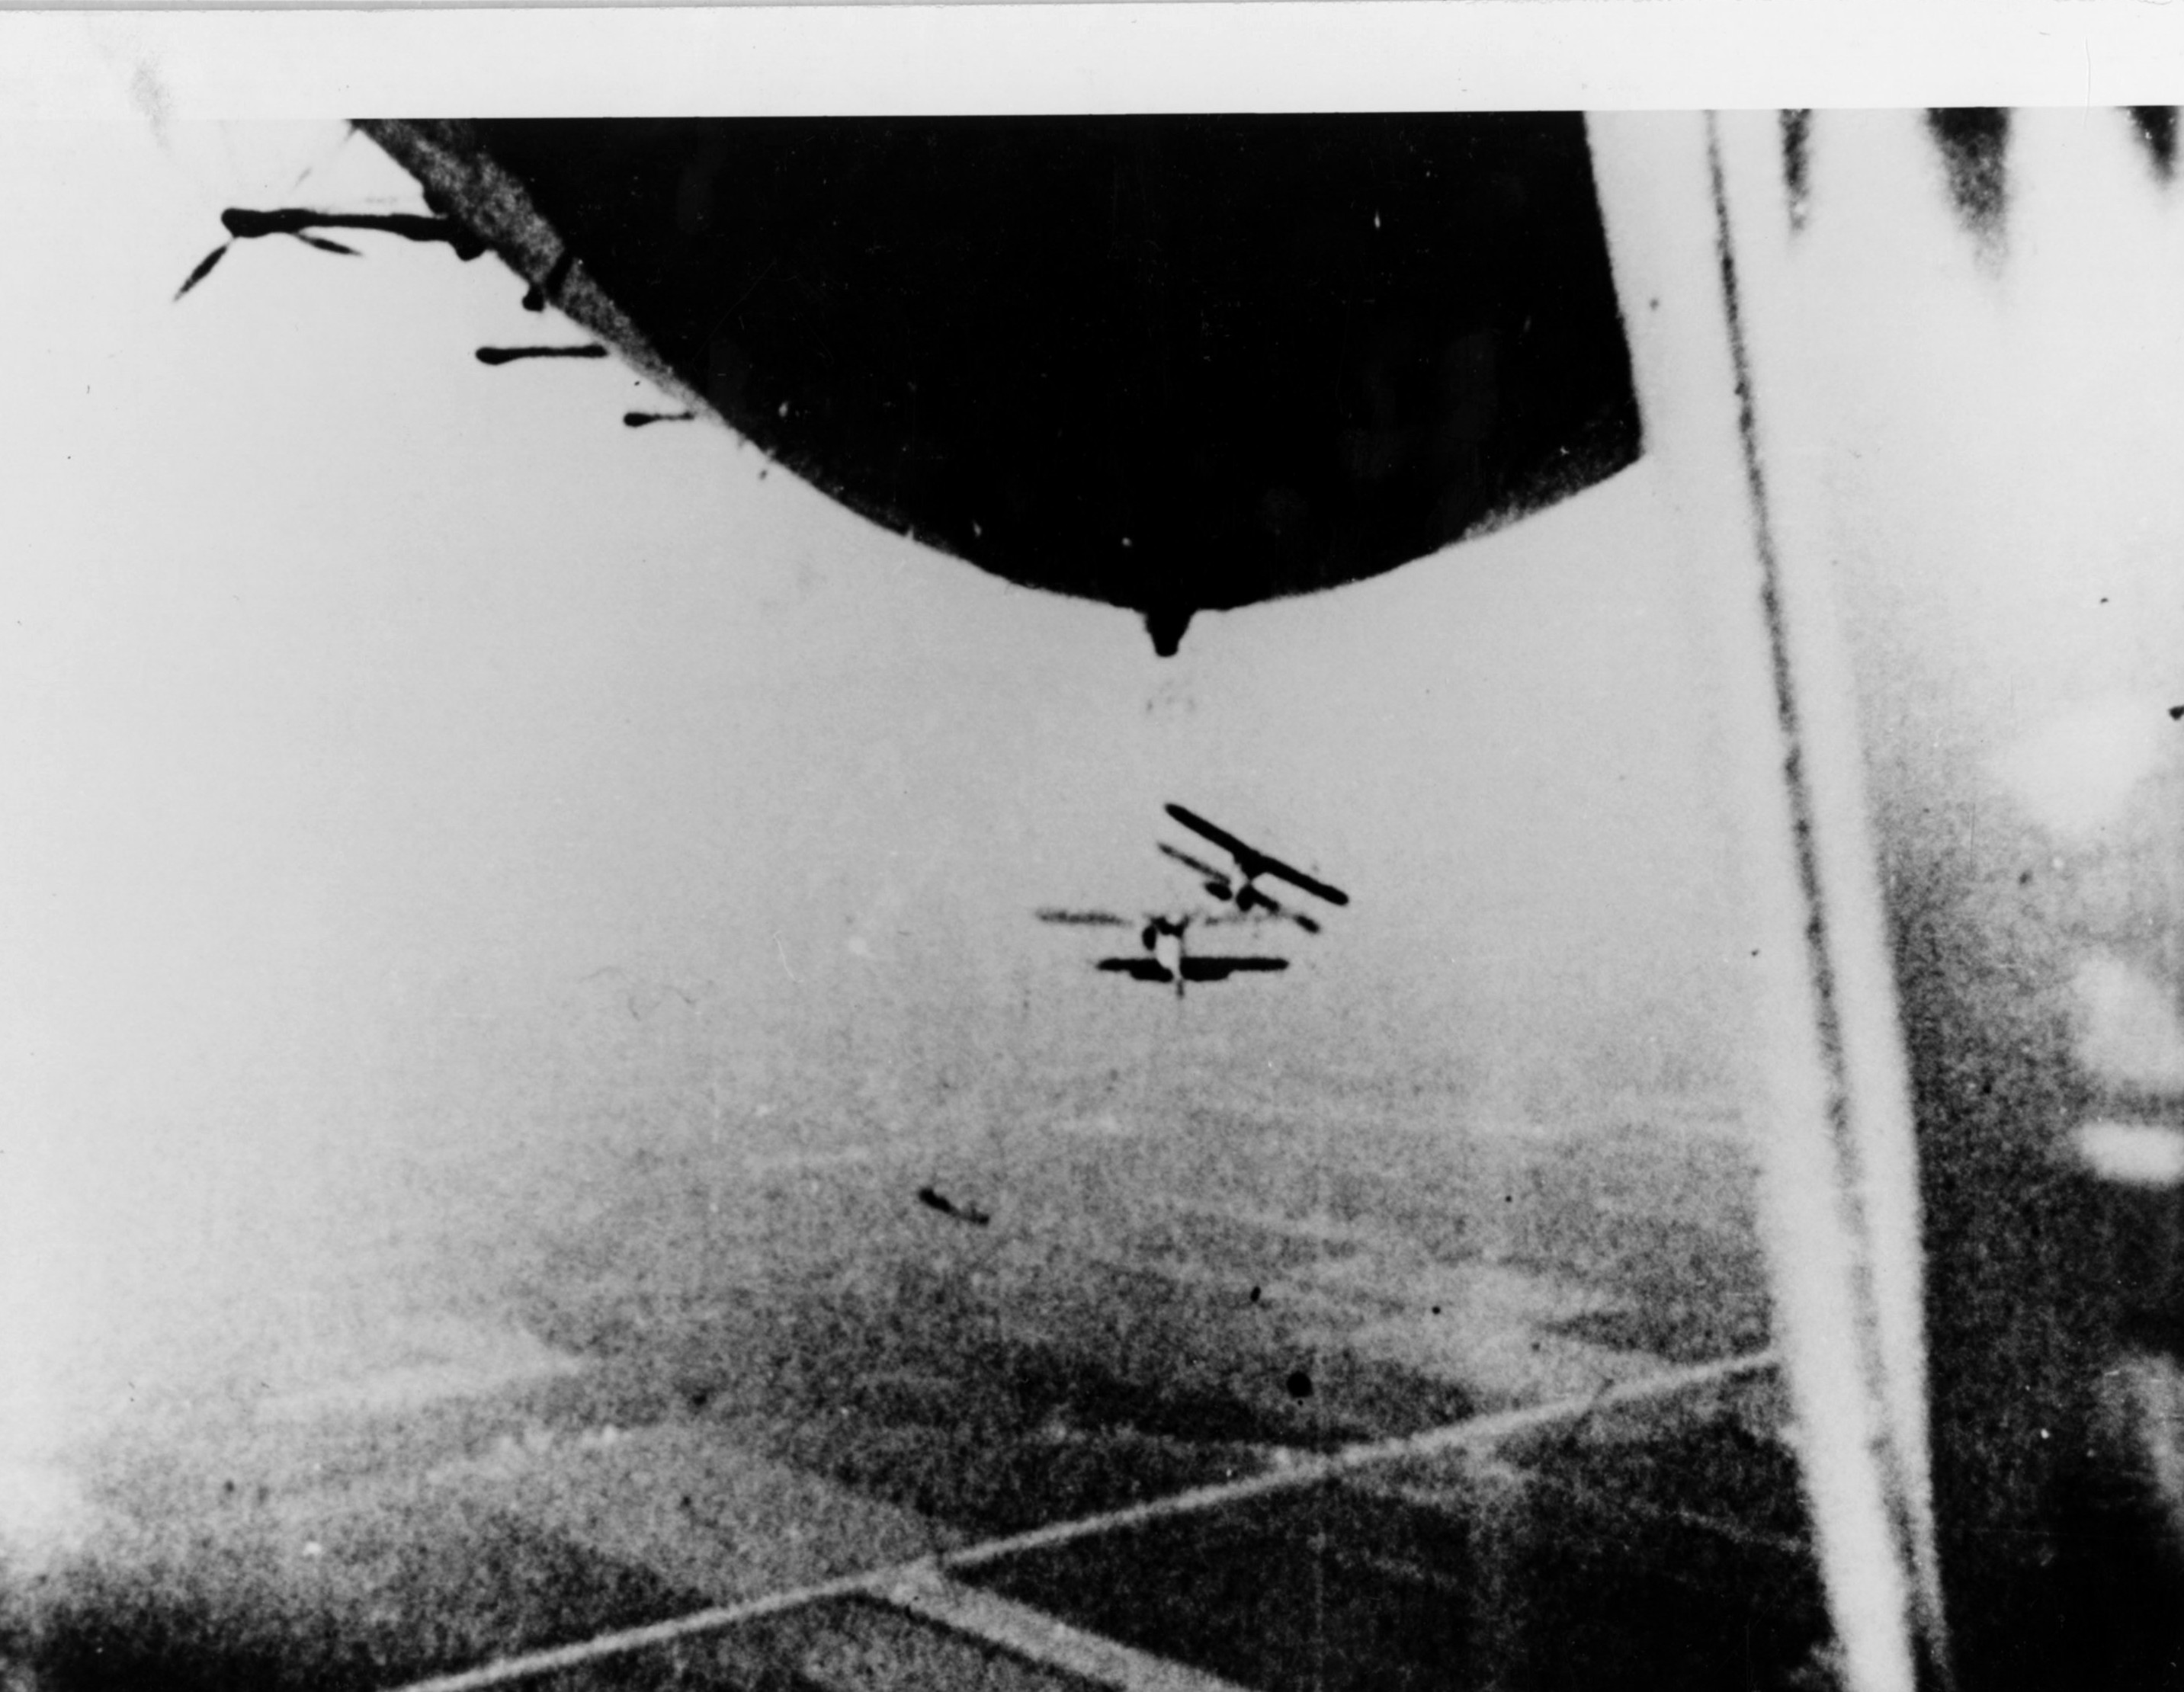 Two Curtiss F9C-2 Sparrowhawks drop simultaneously from USS Macon (ZRS-5) over Sunnyvale, Calif. in 1934.